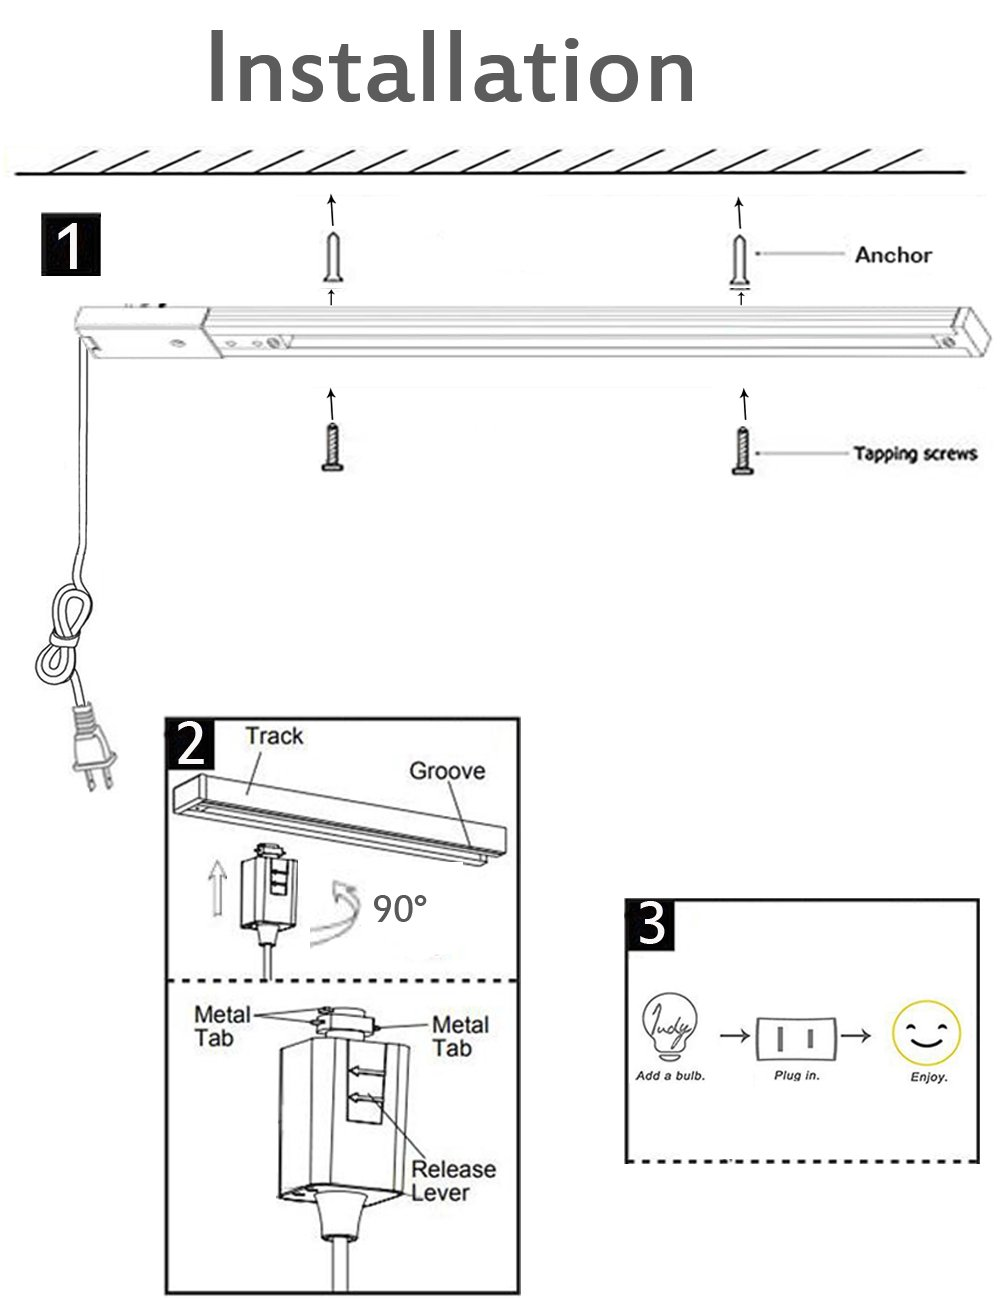 Kiven 3.3 Foot Gloss White Track Light Rails, H System Track Single Circuit Mains Voltage Track,Plug in